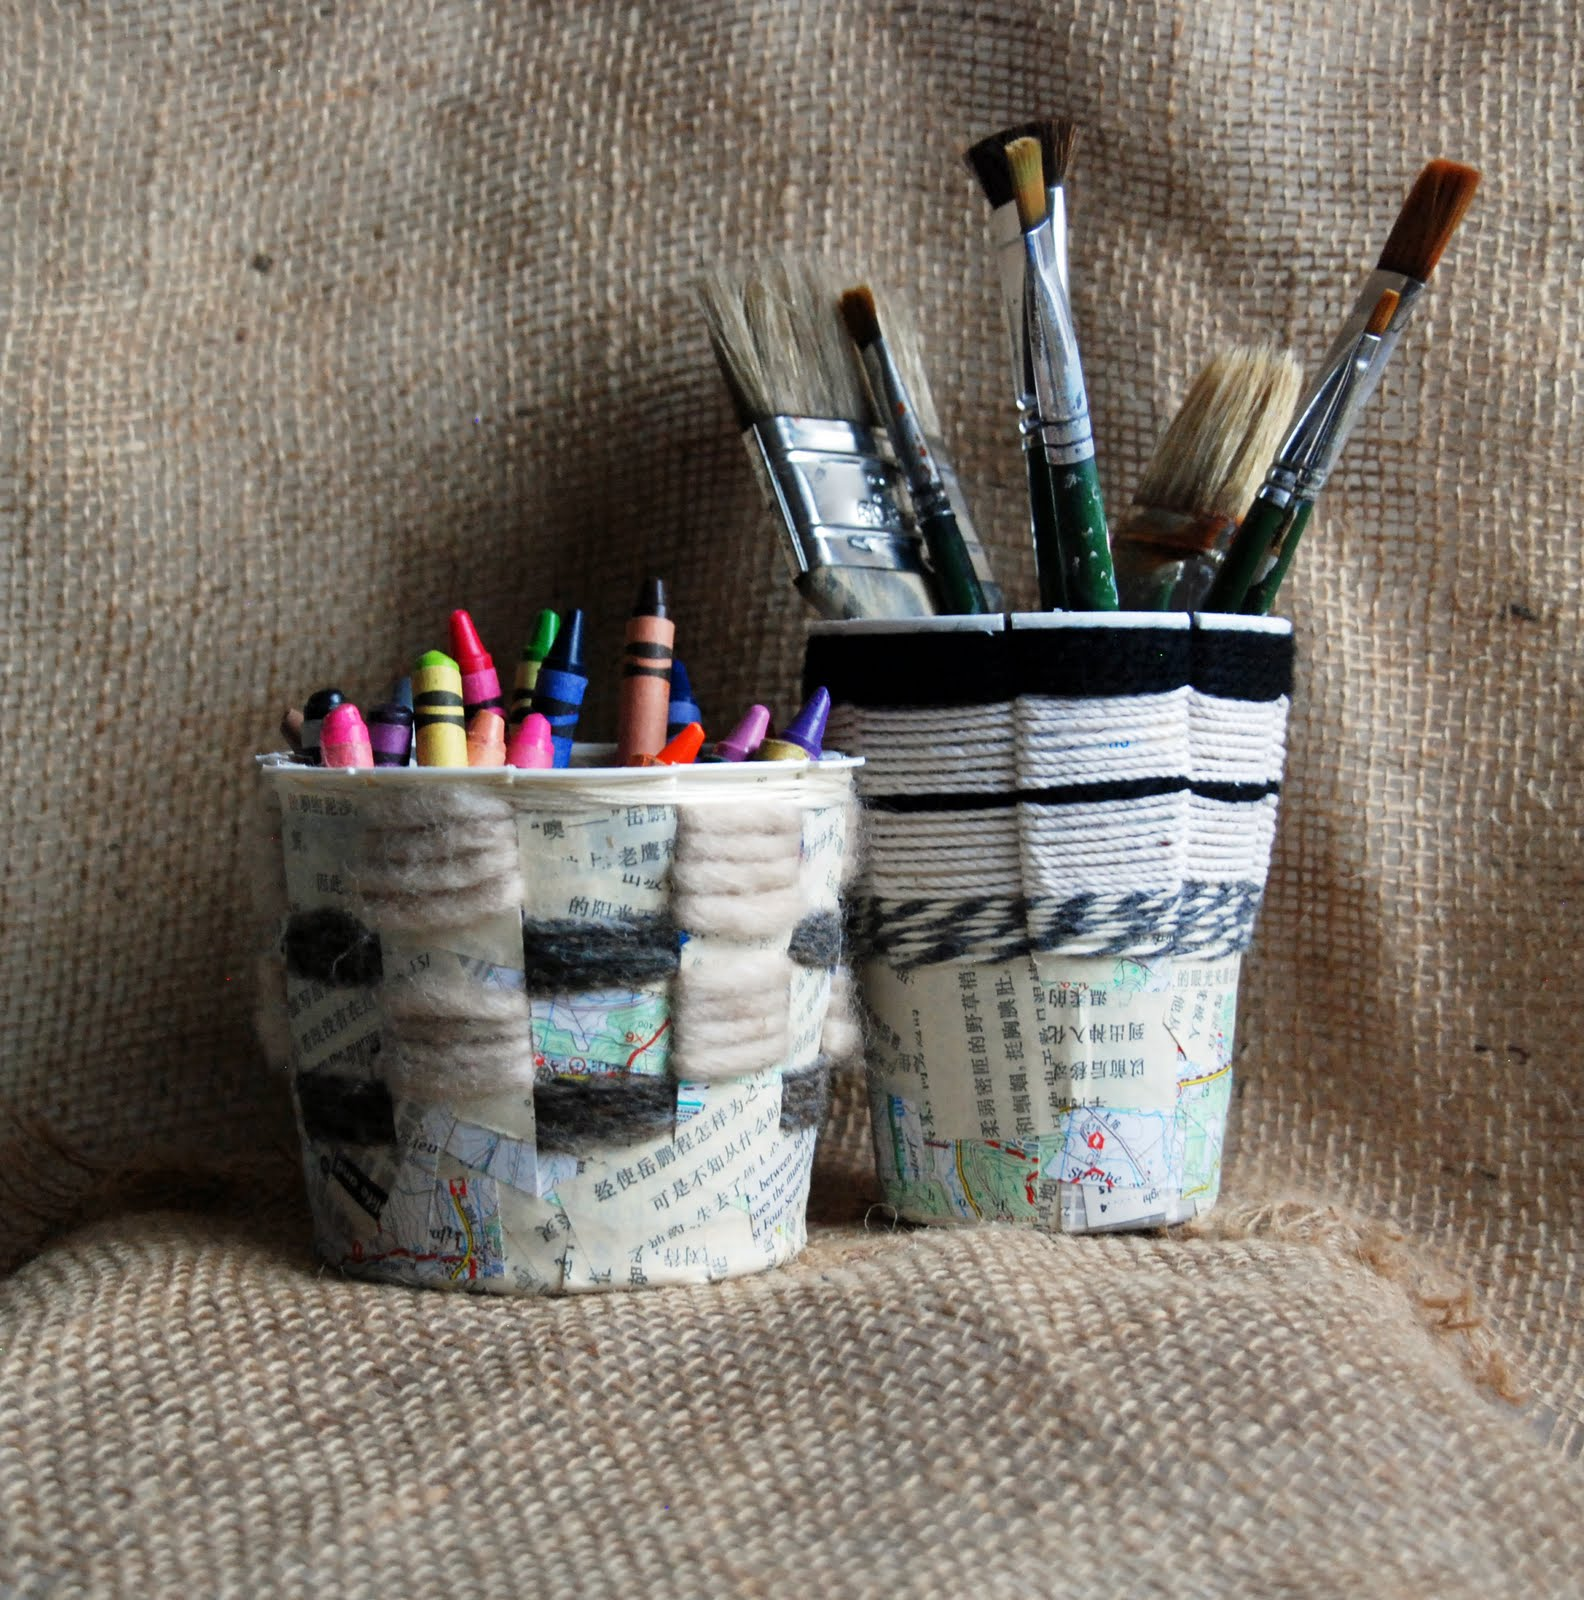 Basket Weaving Using Recycled Materials : That artist woman basket weaving using recycled containers